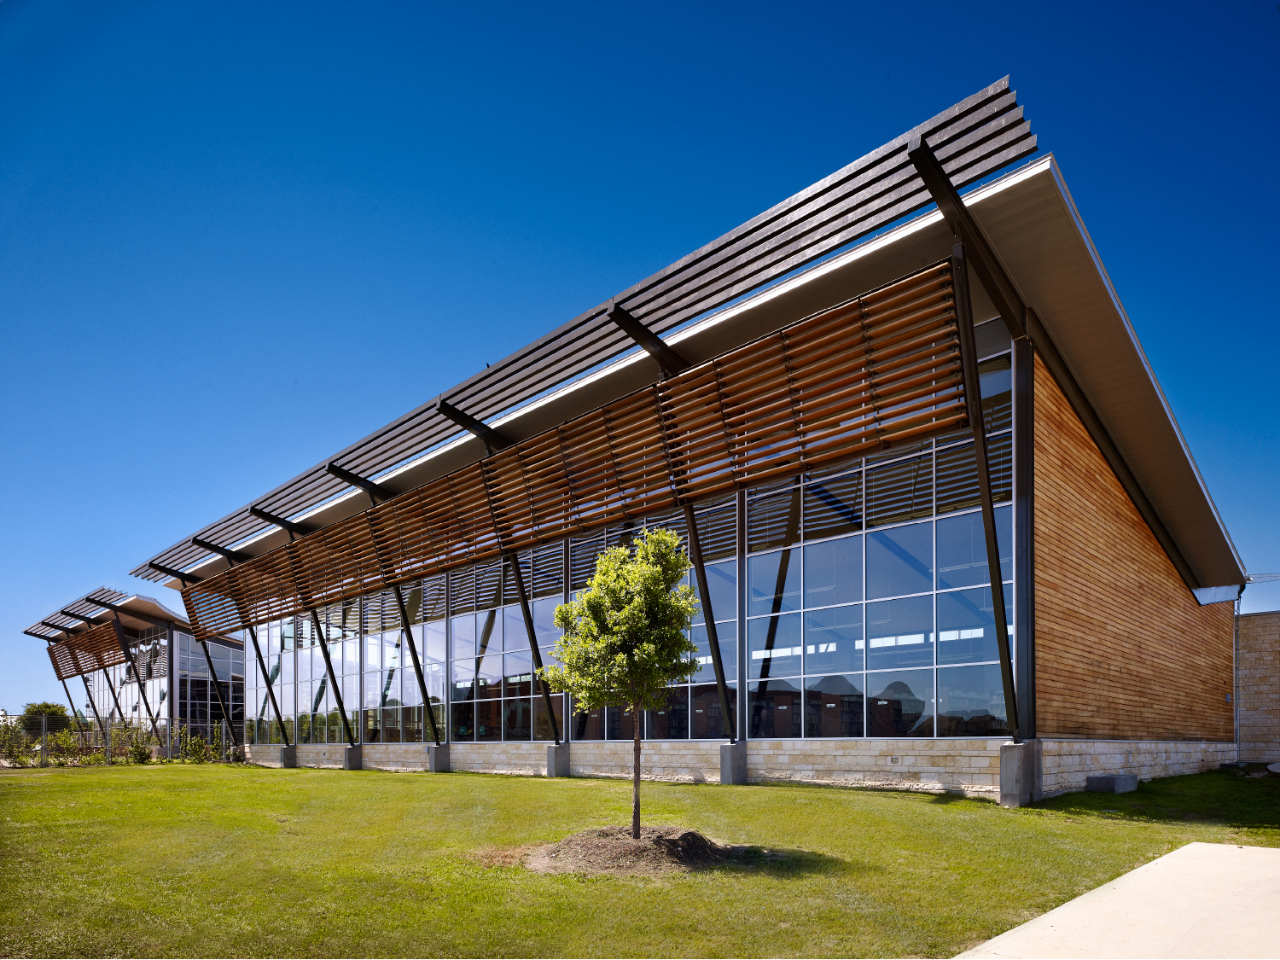 Steel Glass Buildings : Schertz public library kell muñoz architects archdaily